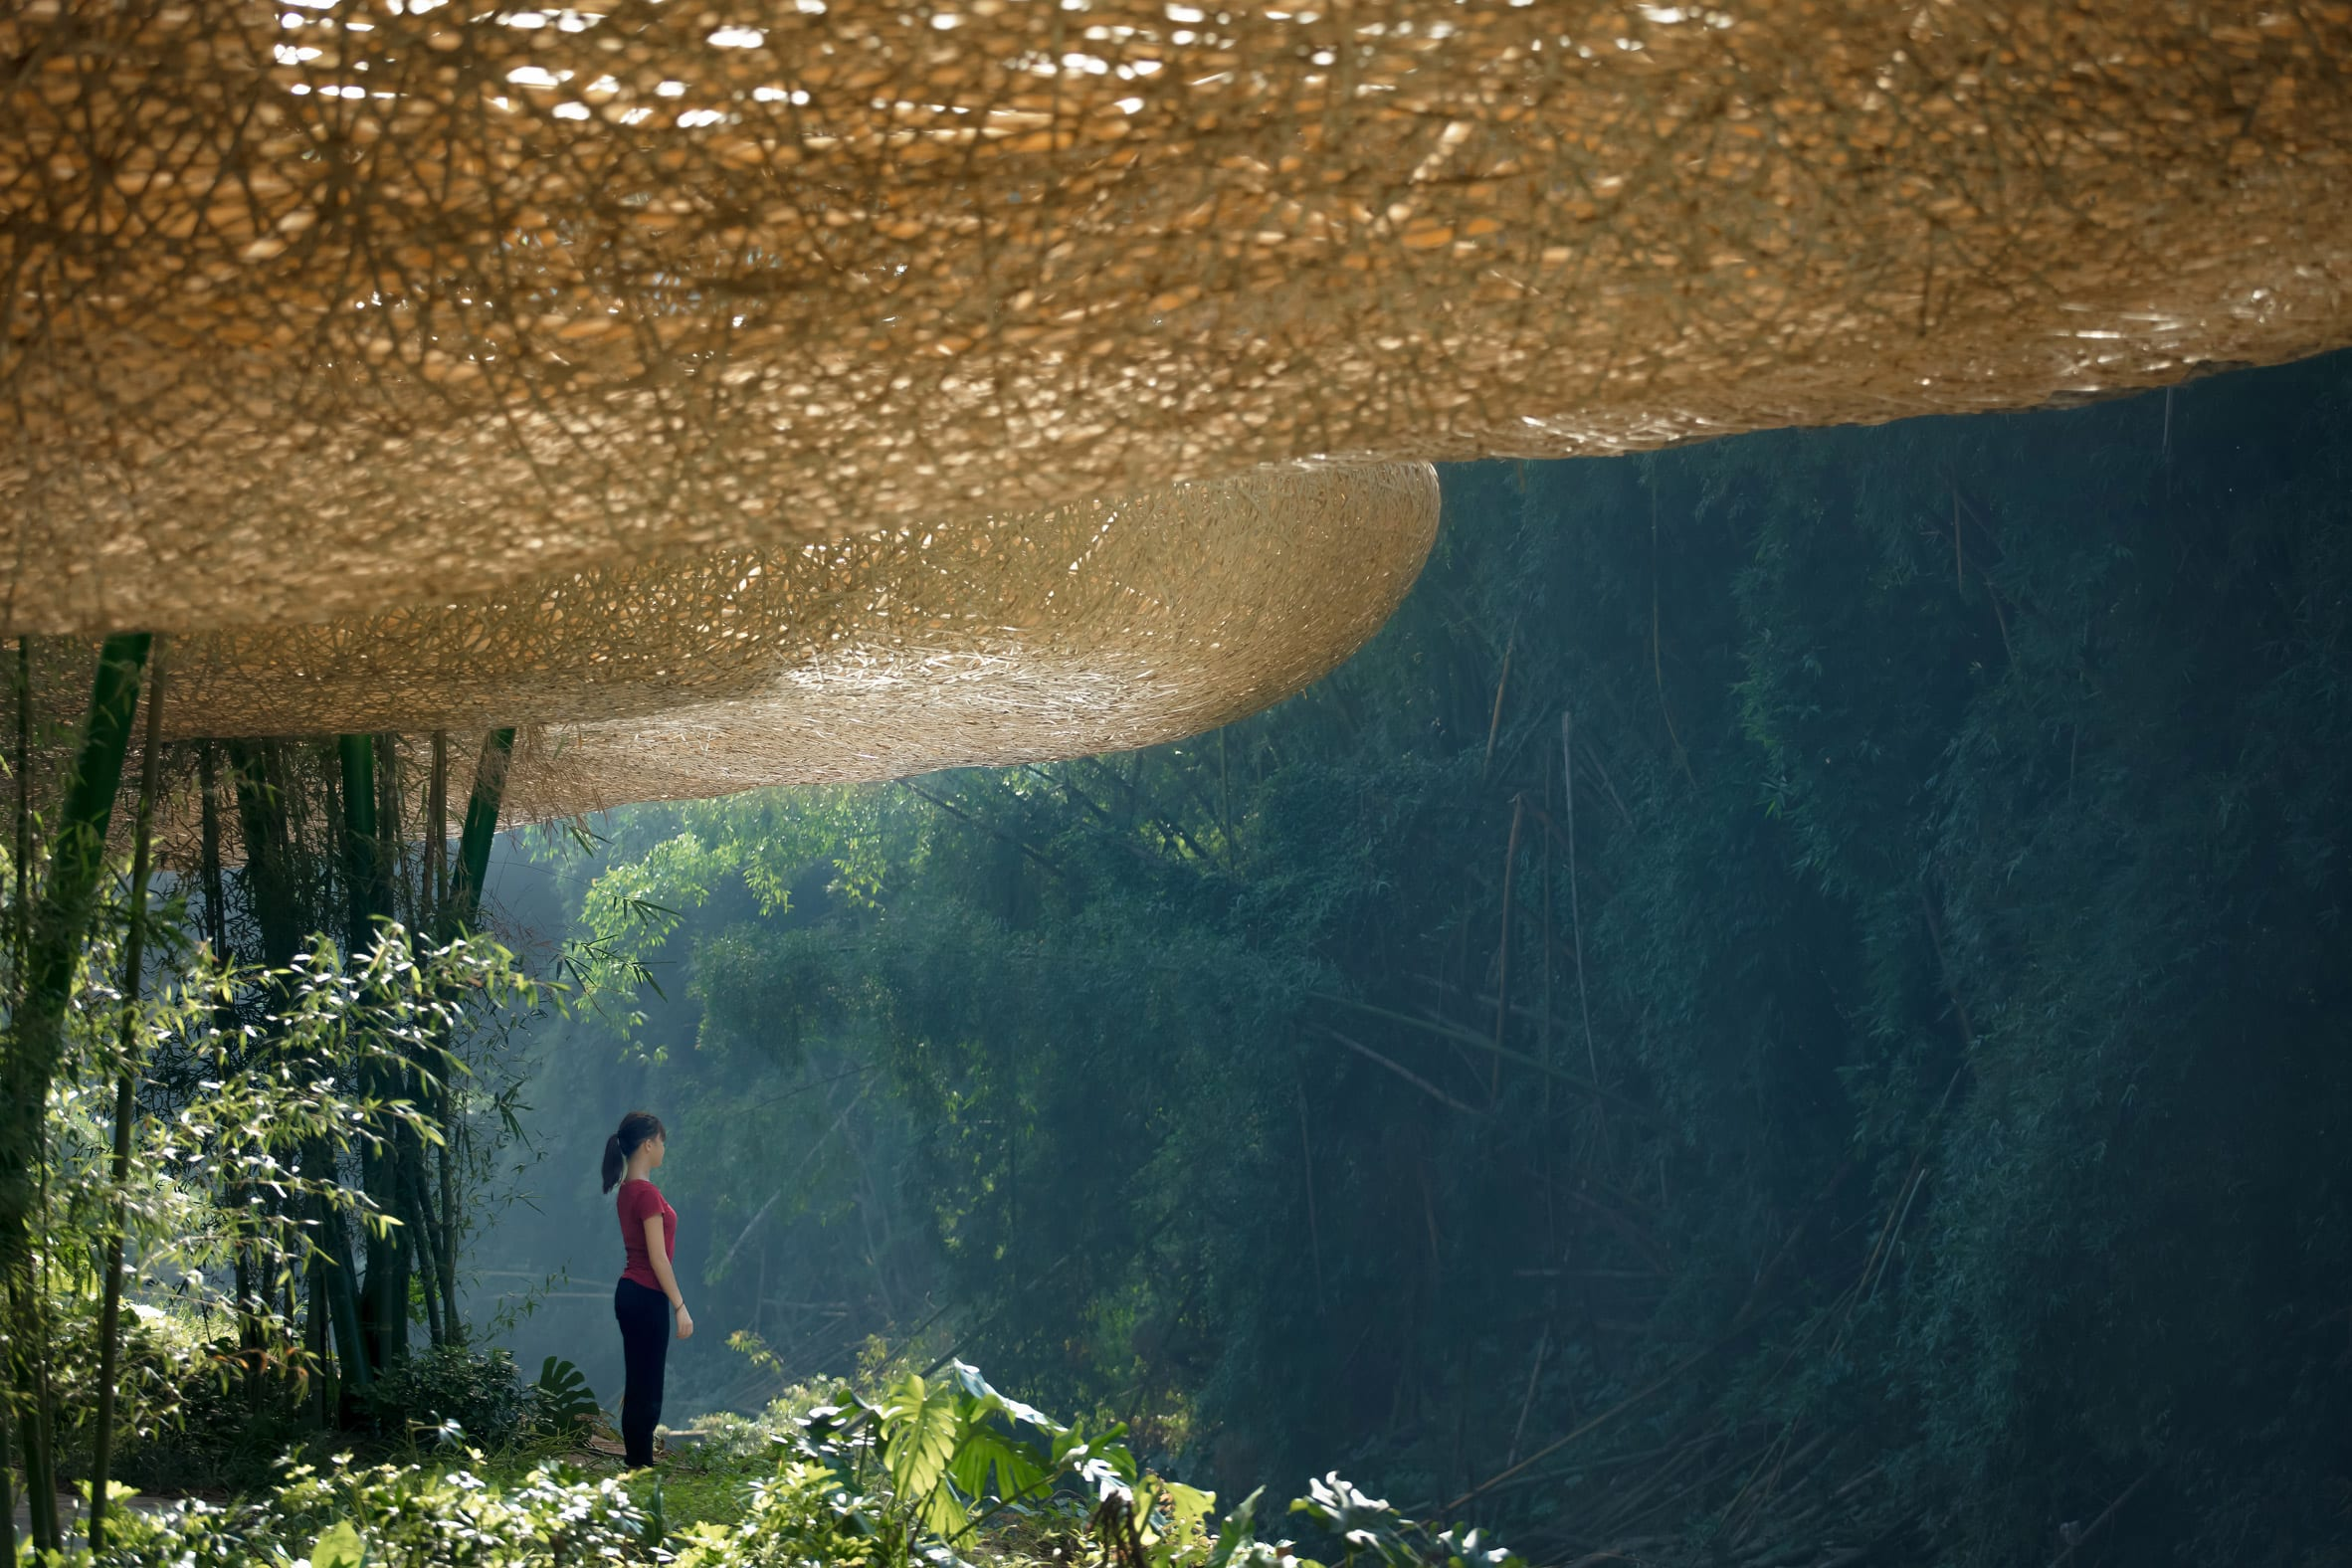 The structure blends with its landscape